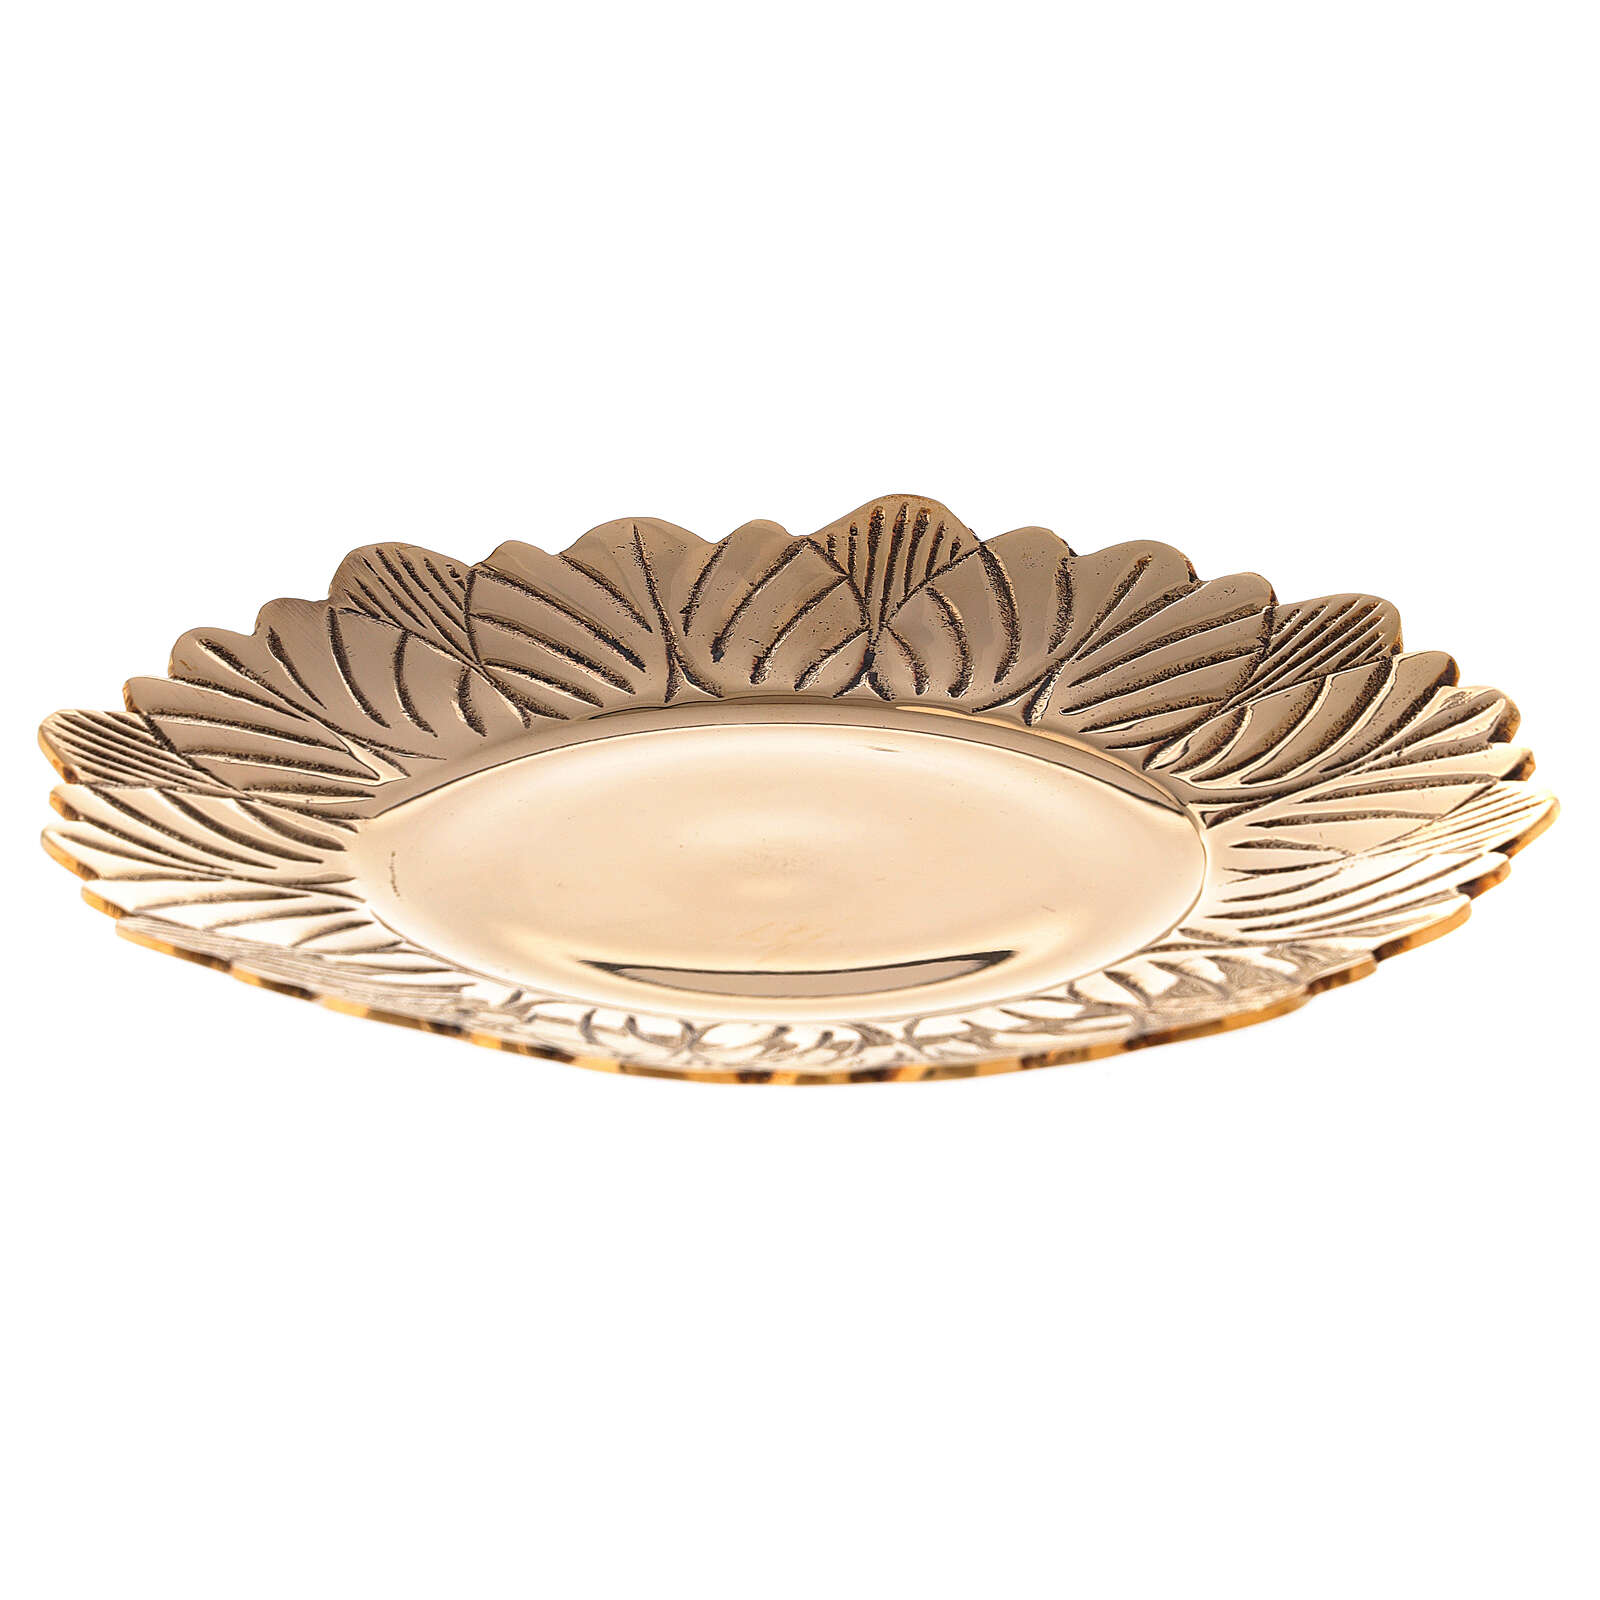 Leaf pattern candle holder plate in gold plated brass diameter 6 3/4 in 3